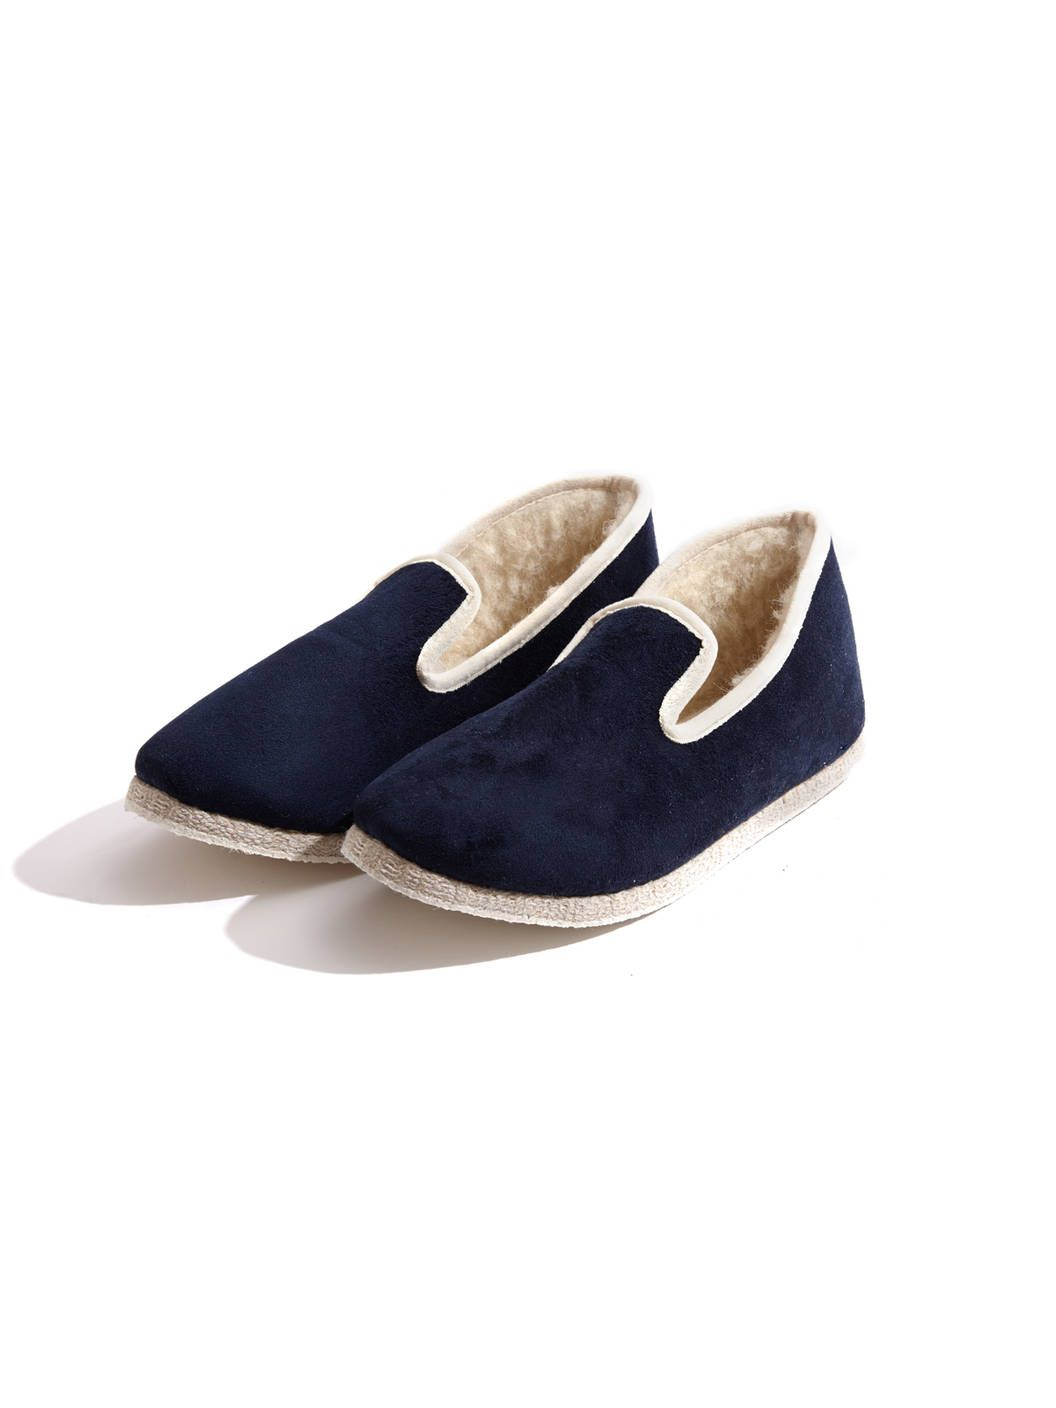 cheap for discount f2f30 8b415 Rondinaud - Charentaise Slippers - Navy | Men's Shoes ...